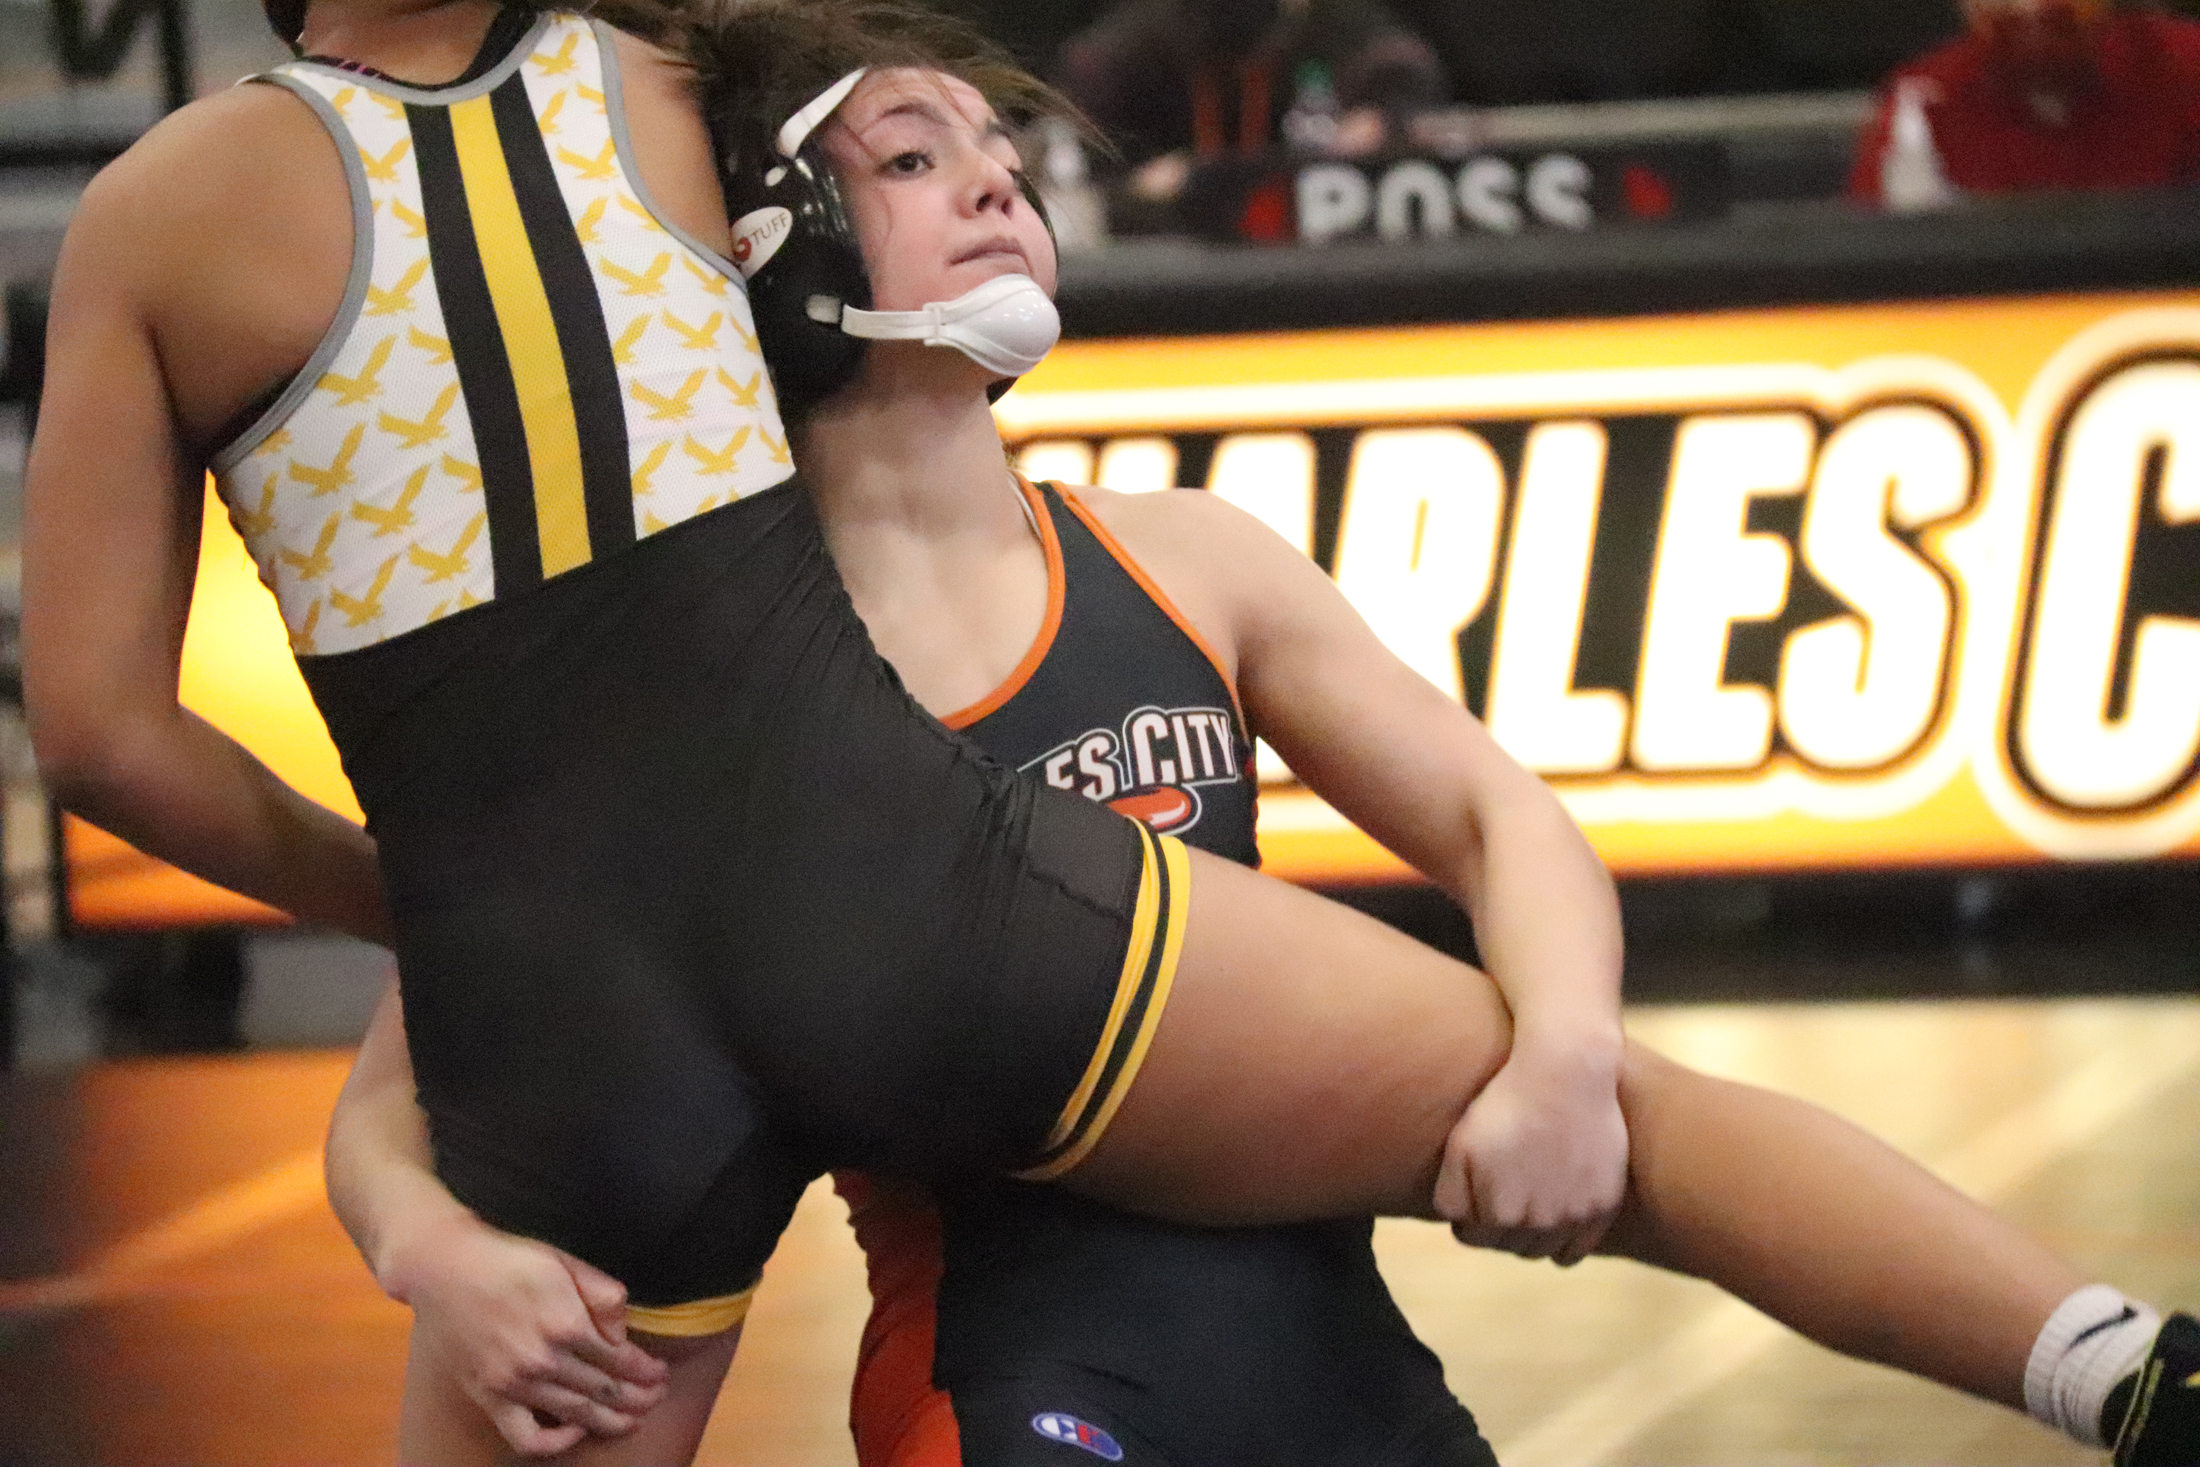 Connell, Luft and Maloy win individual titles at Anamosa Girls Wrestling Tournament